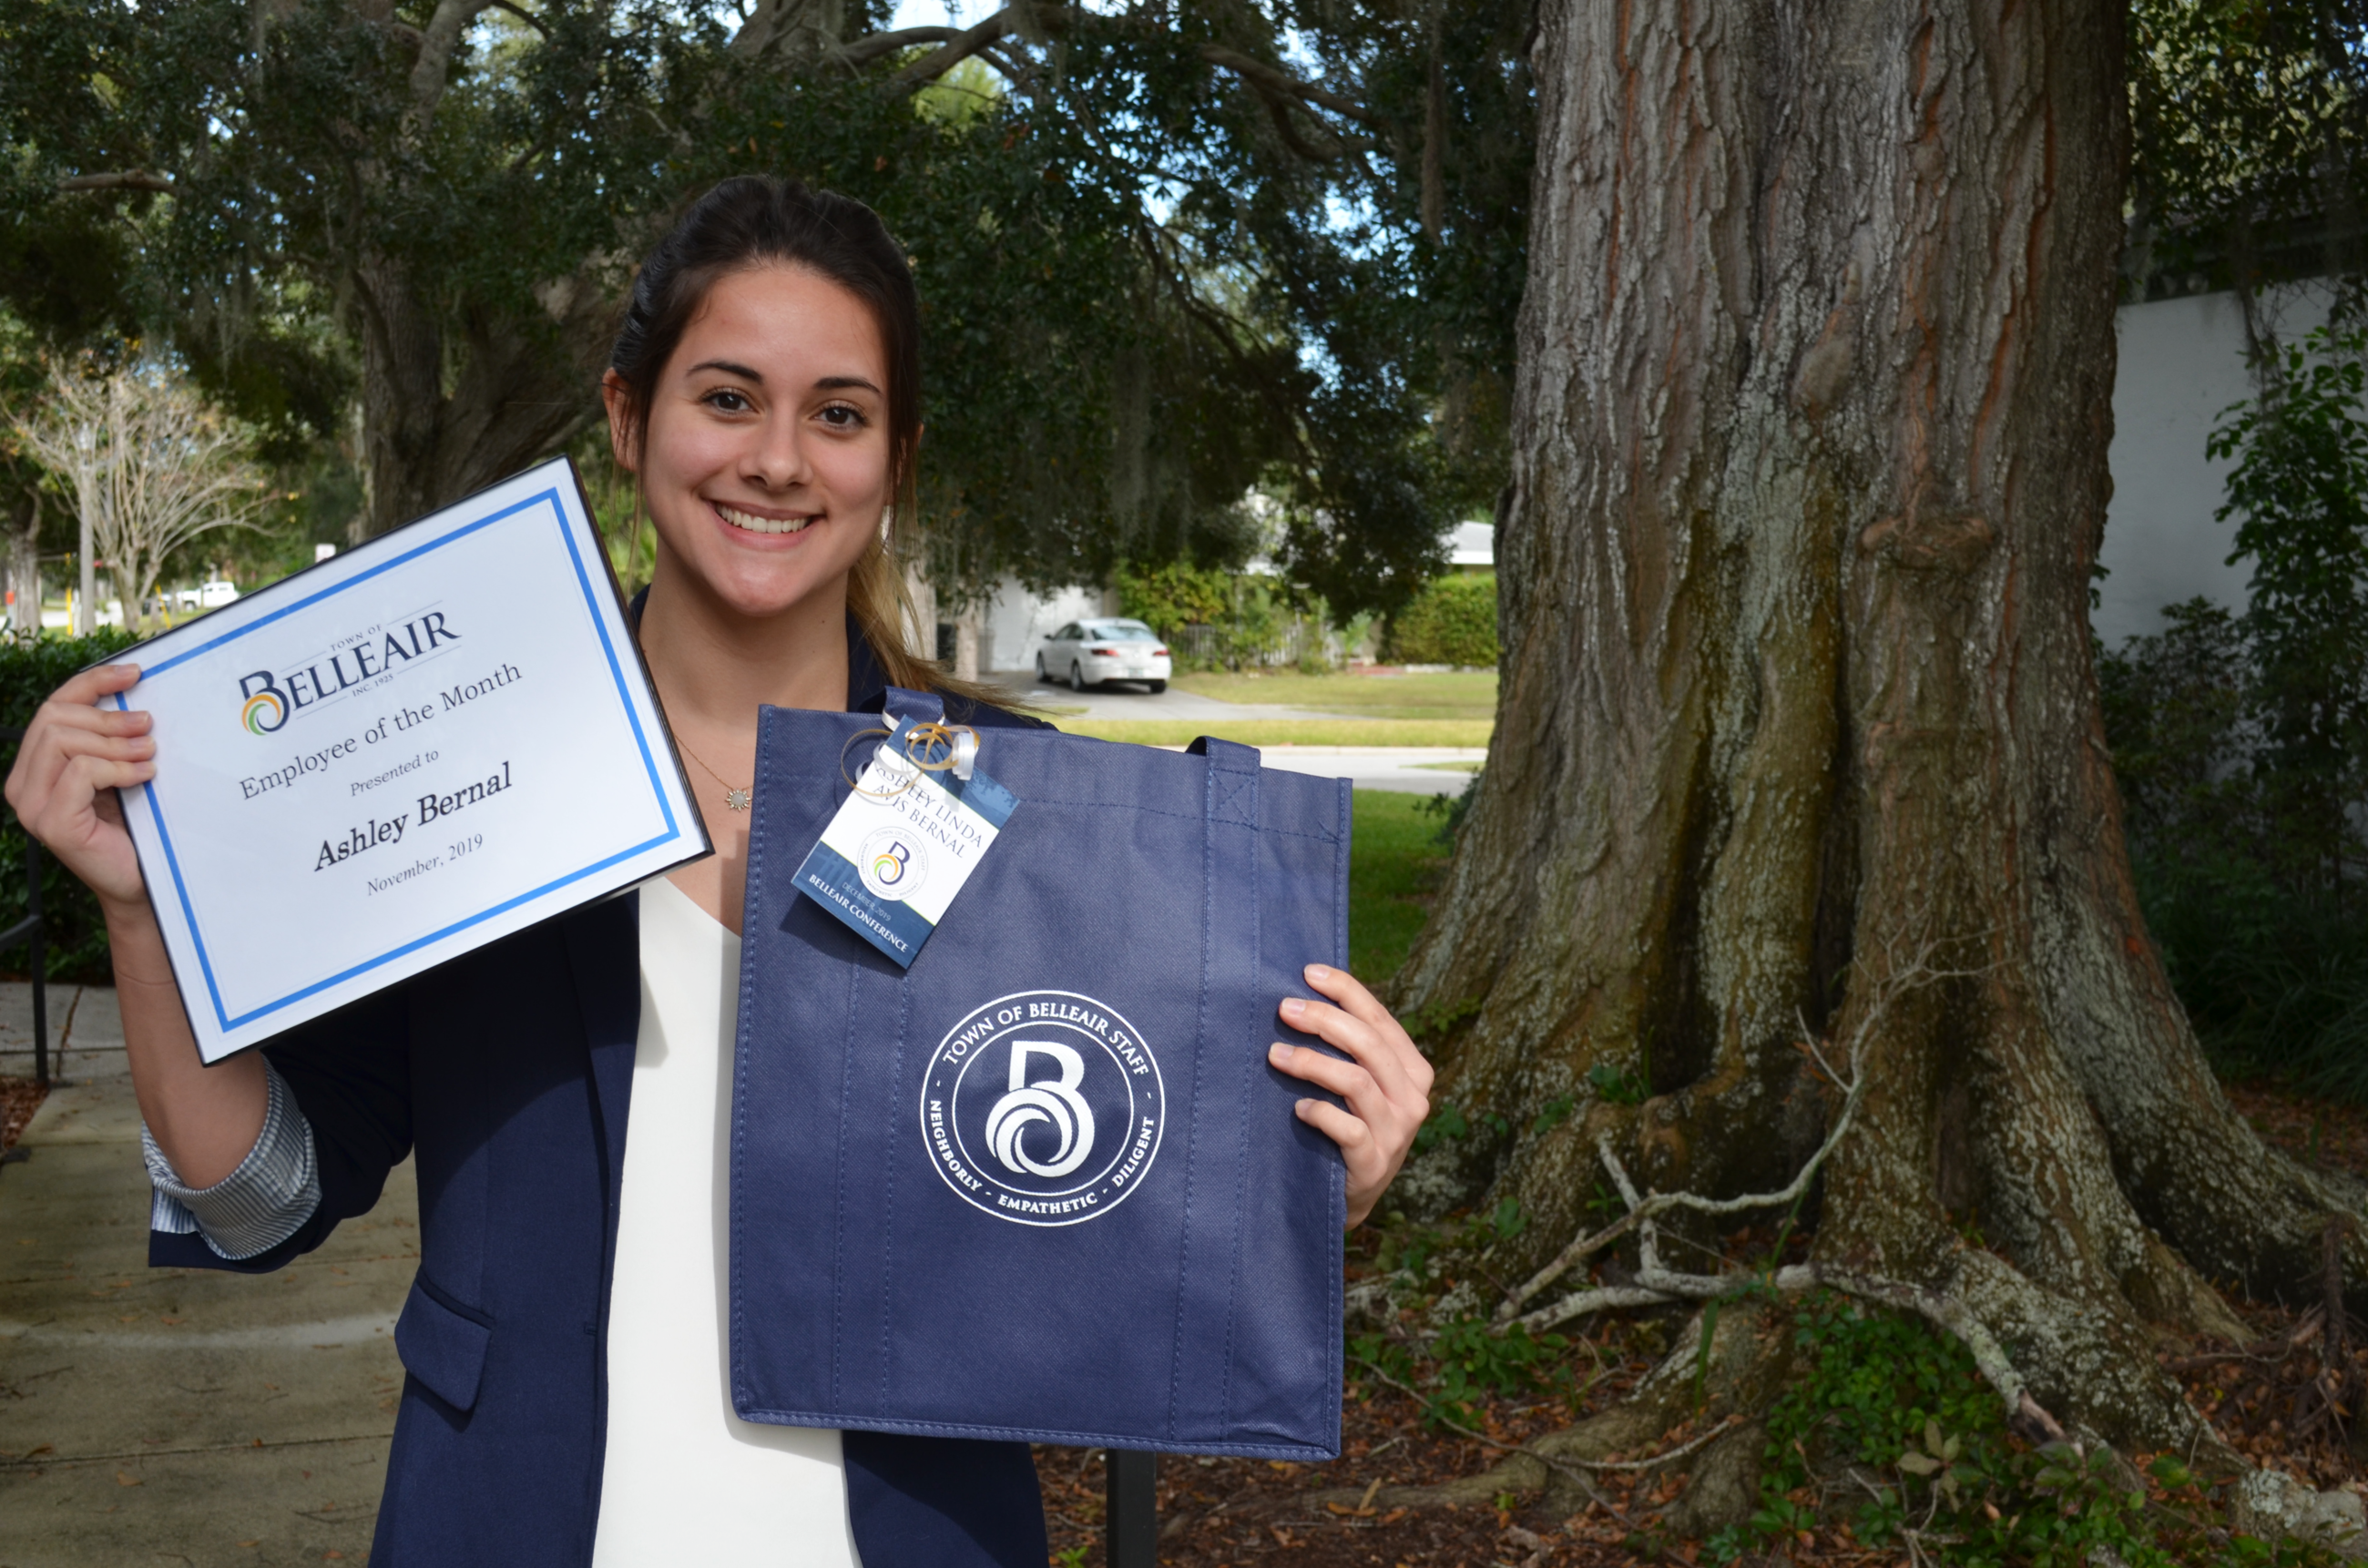 Ashley Bernal holds her Employee of the Month certificate and a branded Belleair tote she designed o